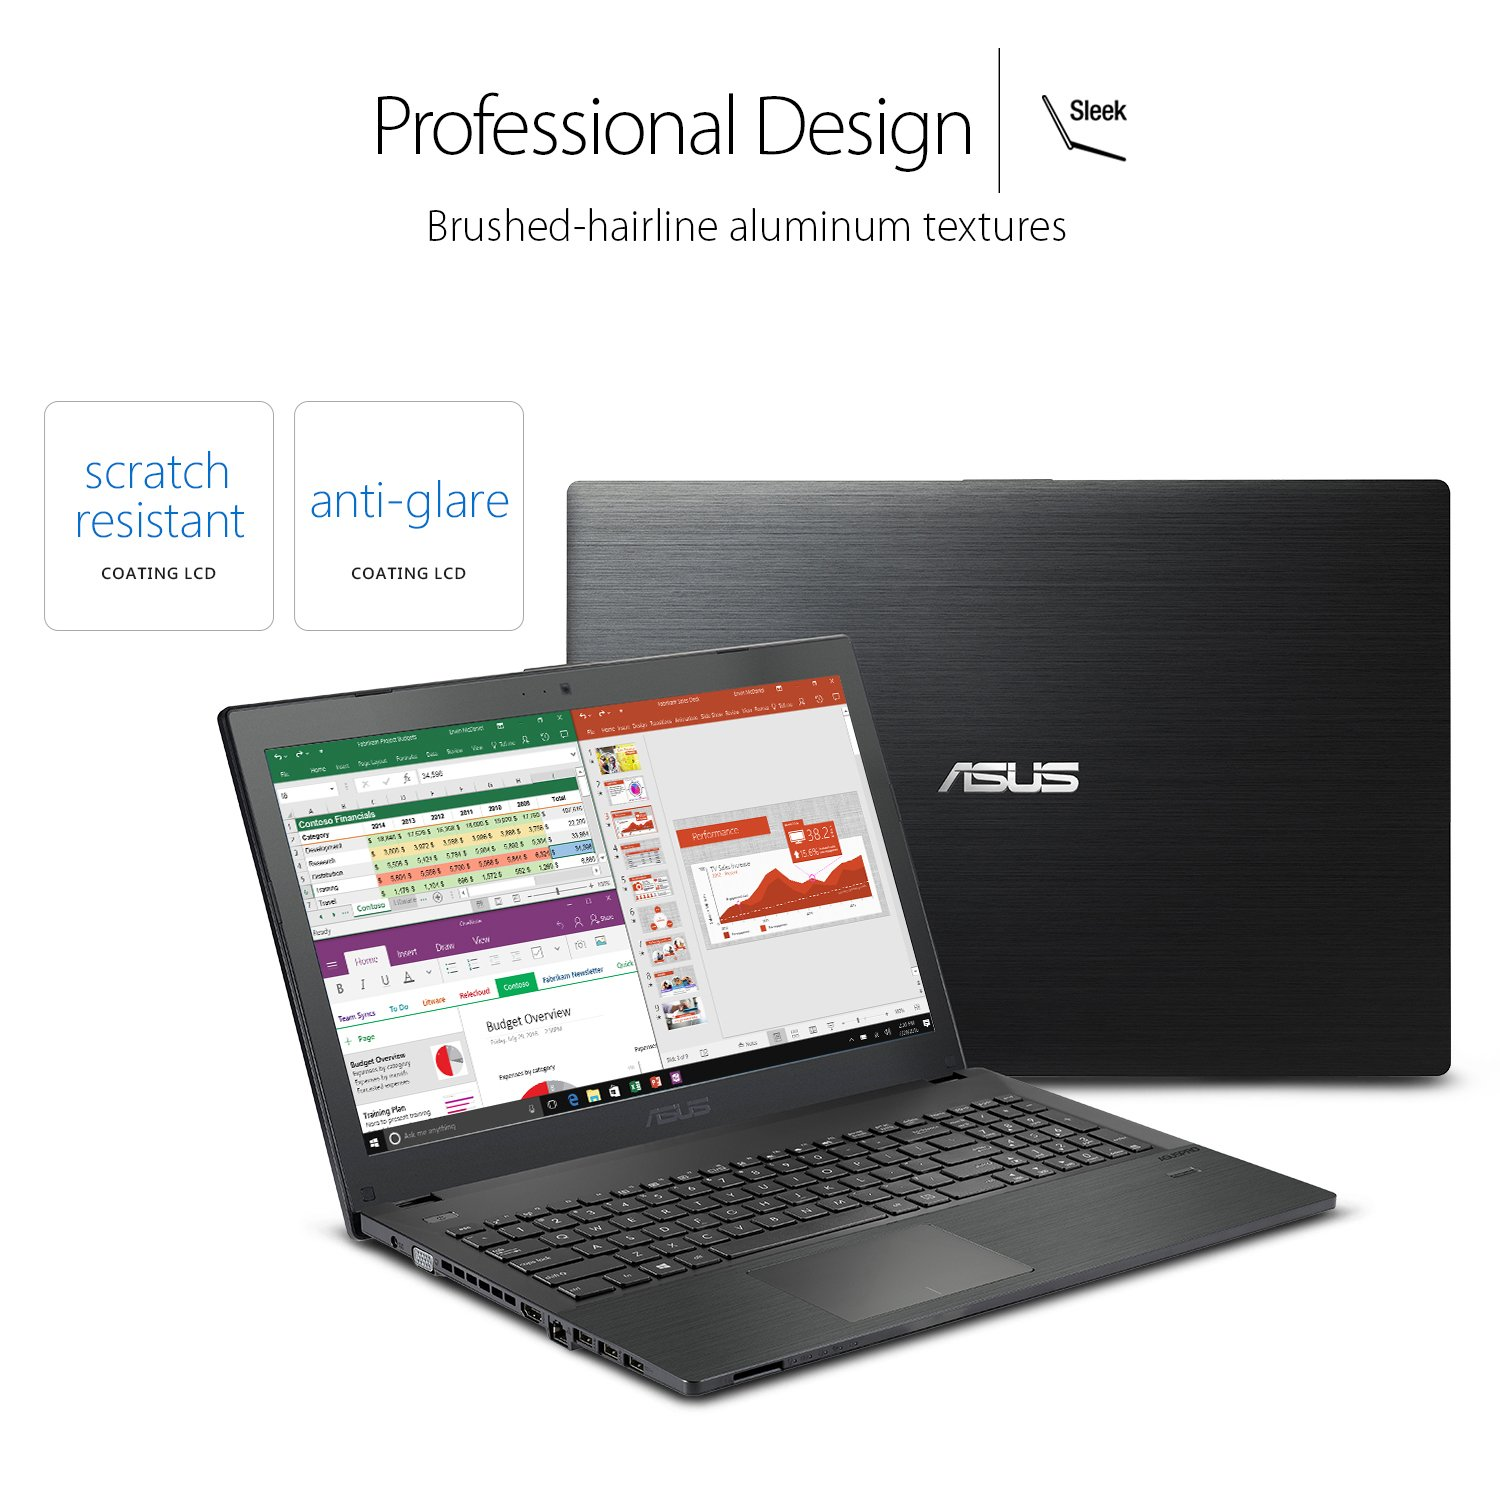 Asus P Series P2540ua Ab51 Business Standard Laptop 7th Lcd Led 14 0 Slim Standart 30 Pin Untuk Gen Intel Core I5 25ghz 3m Cache Up To 31ghz Fhd Display 8gb Ram 1tb Hdd